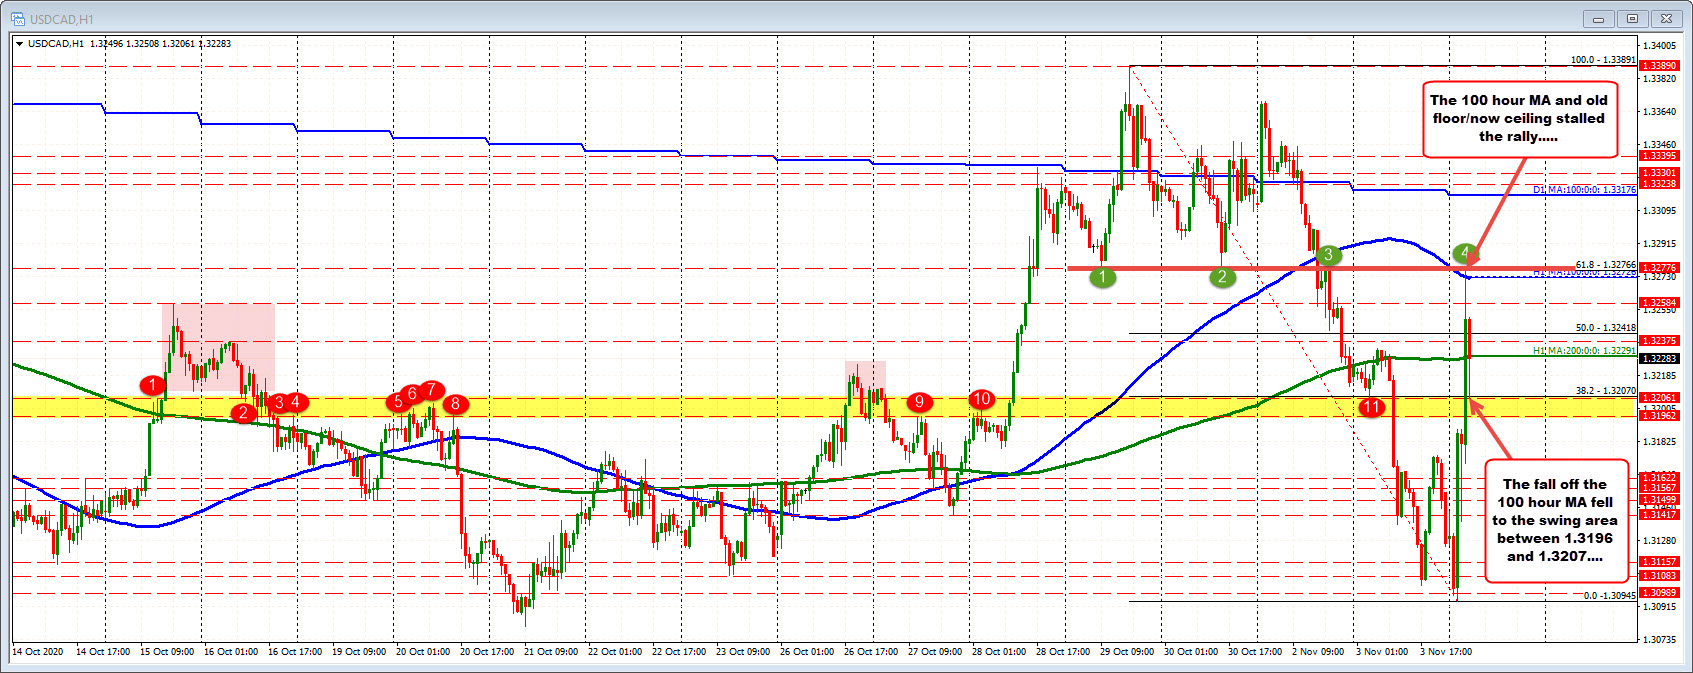 USDCAD finds sellers near the 100 hour MA